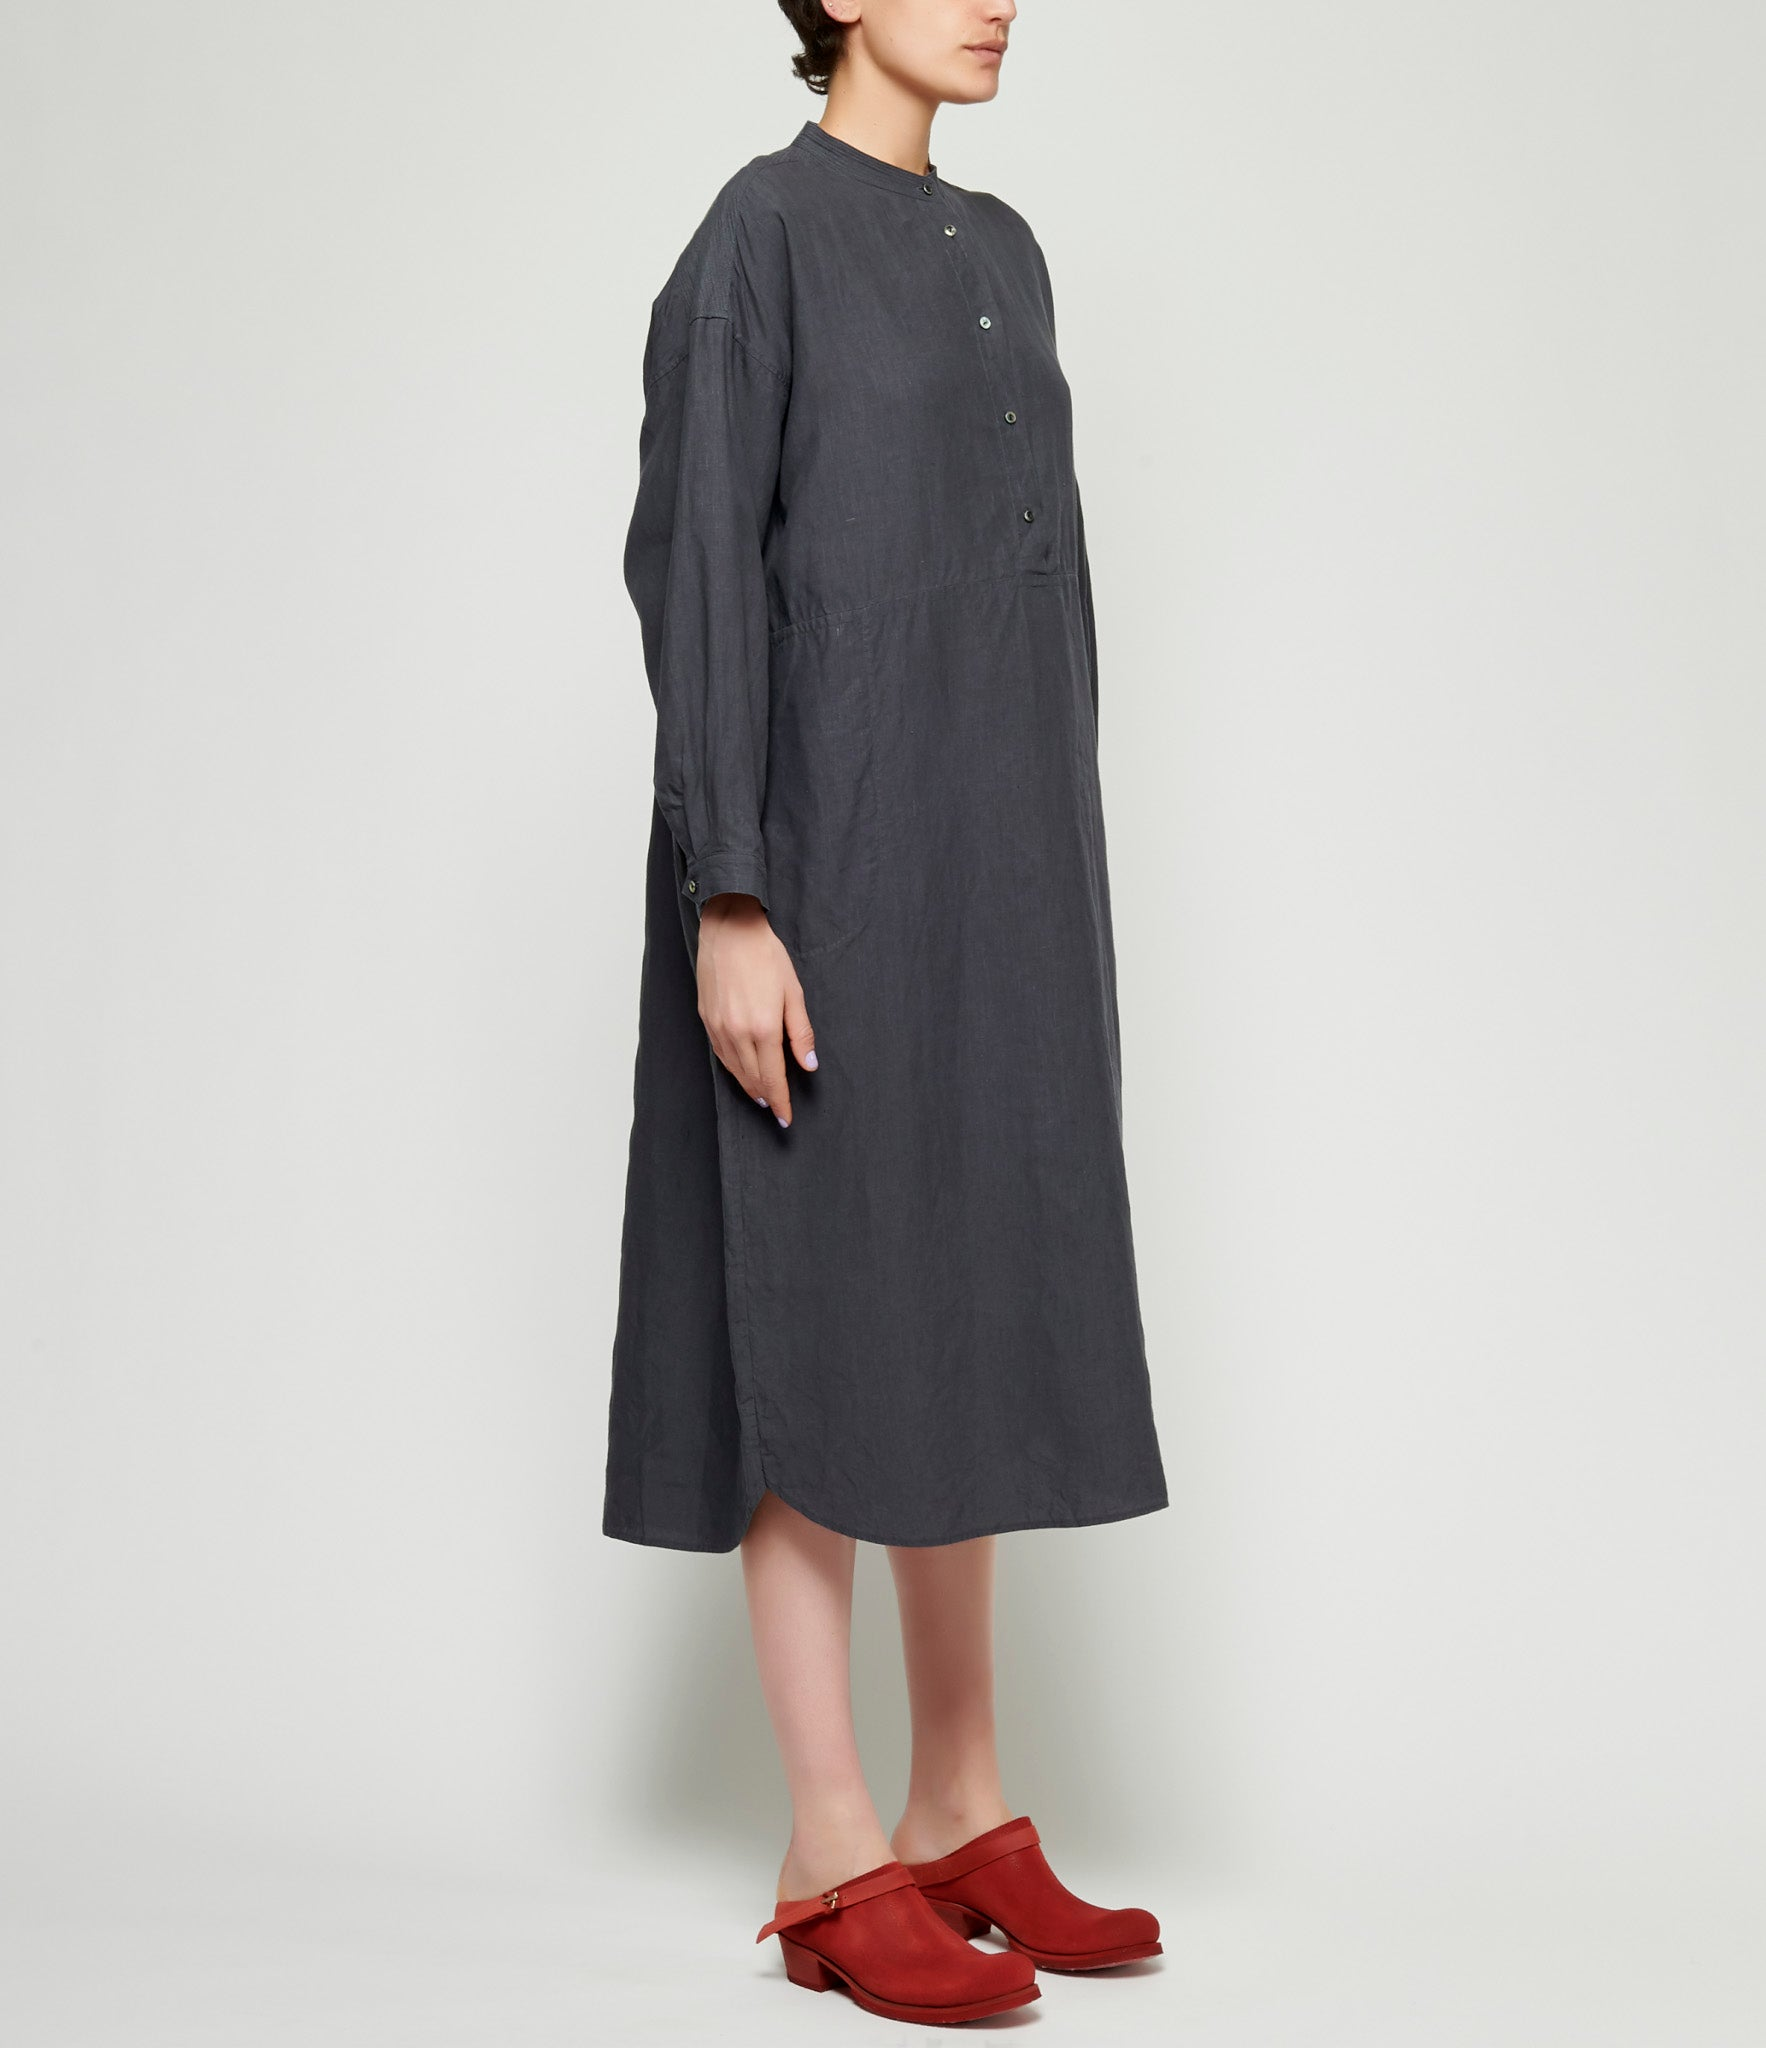 Arts & Science Stitched Yoke Shirt Dress